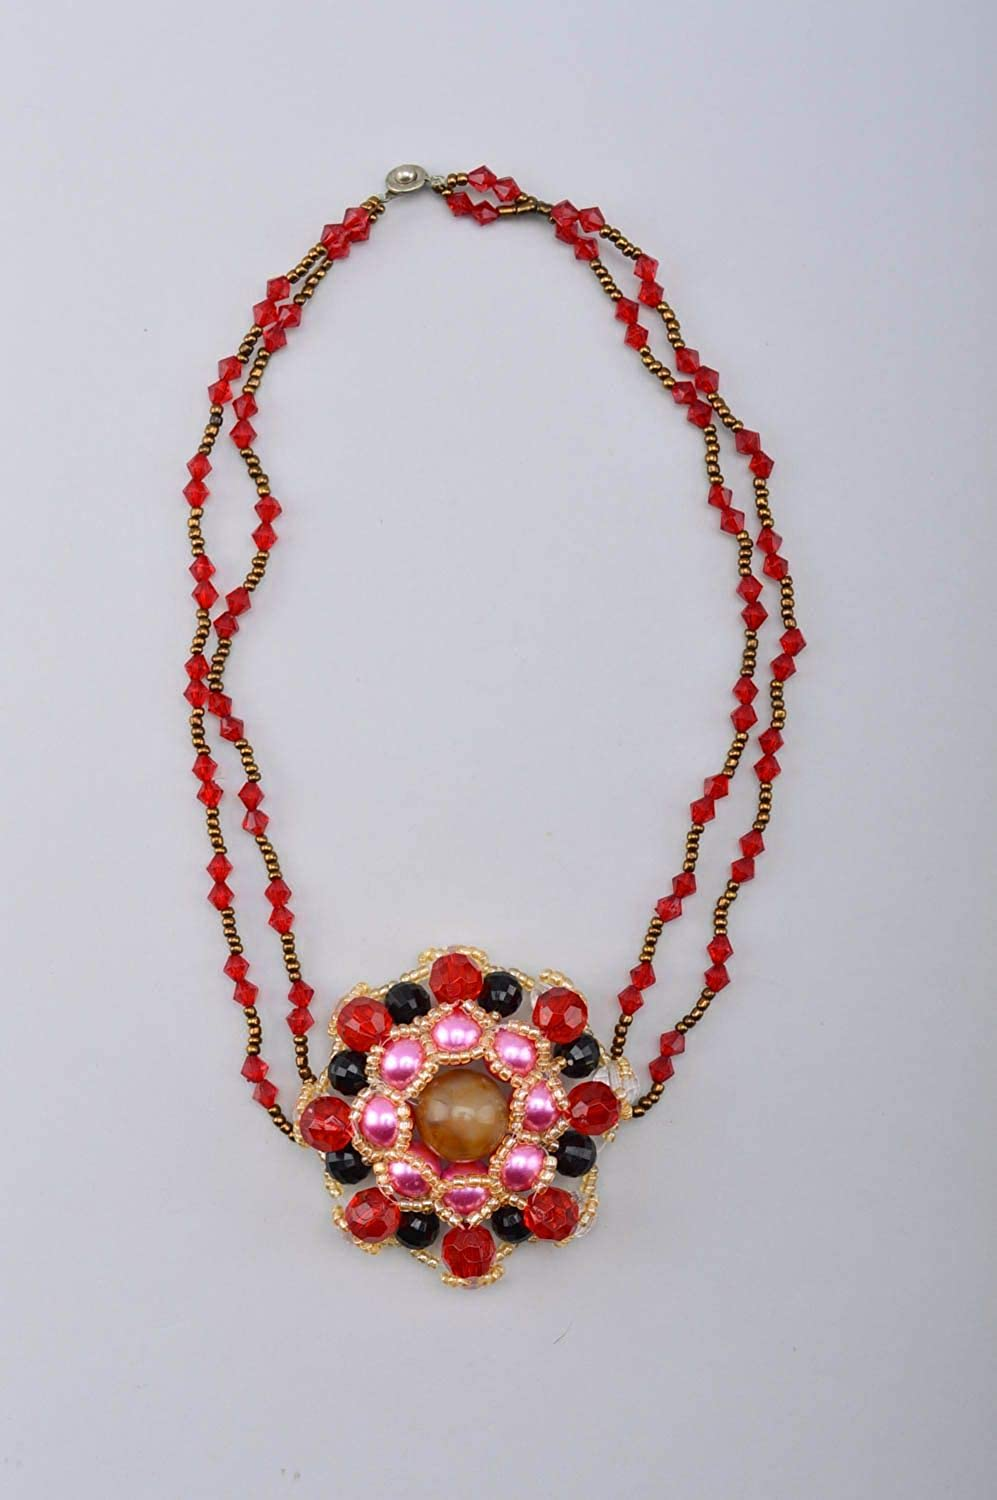 Handmade Necklace Designer Accessory Gift Ideas Bead Necklace Gift for her